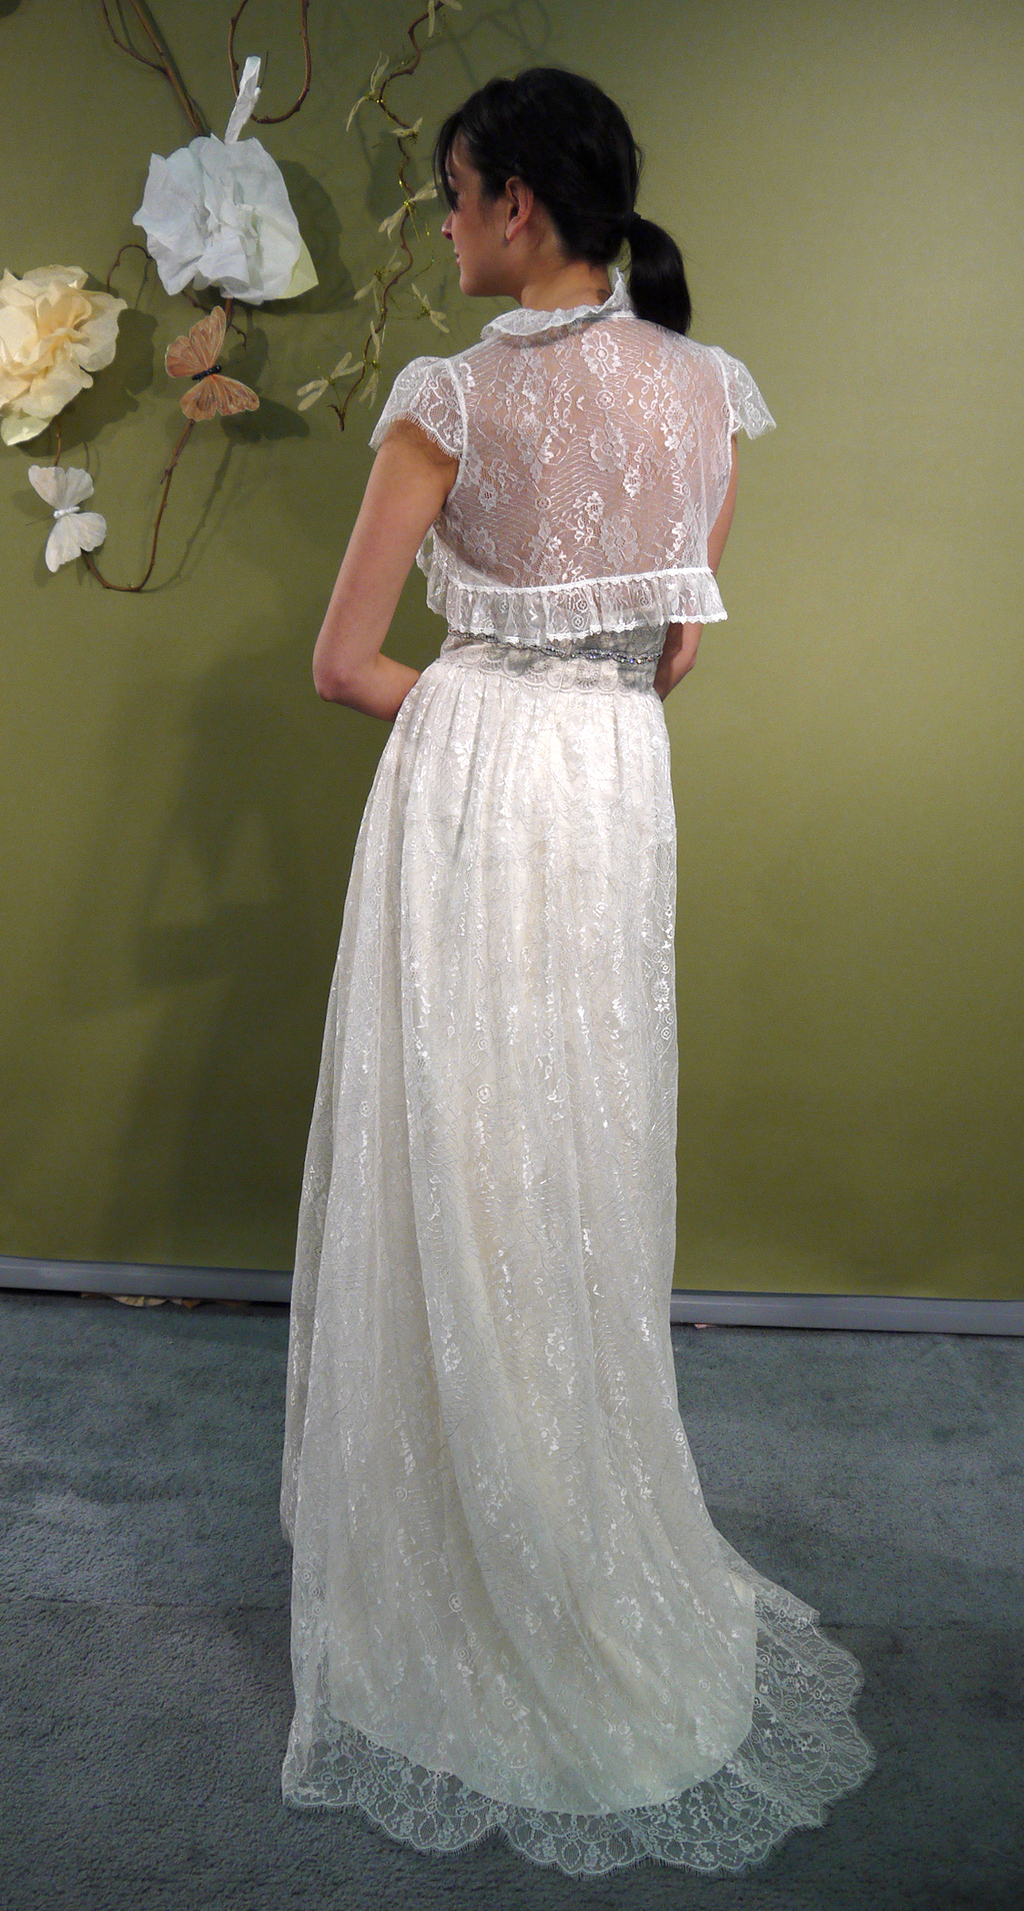 Fall-2011-wedding-dresses-norah-strapless-empire-wedding-dress-beaded-bridal-belt-claire-pettibone-cap-sleeved-bolero-back-large.full